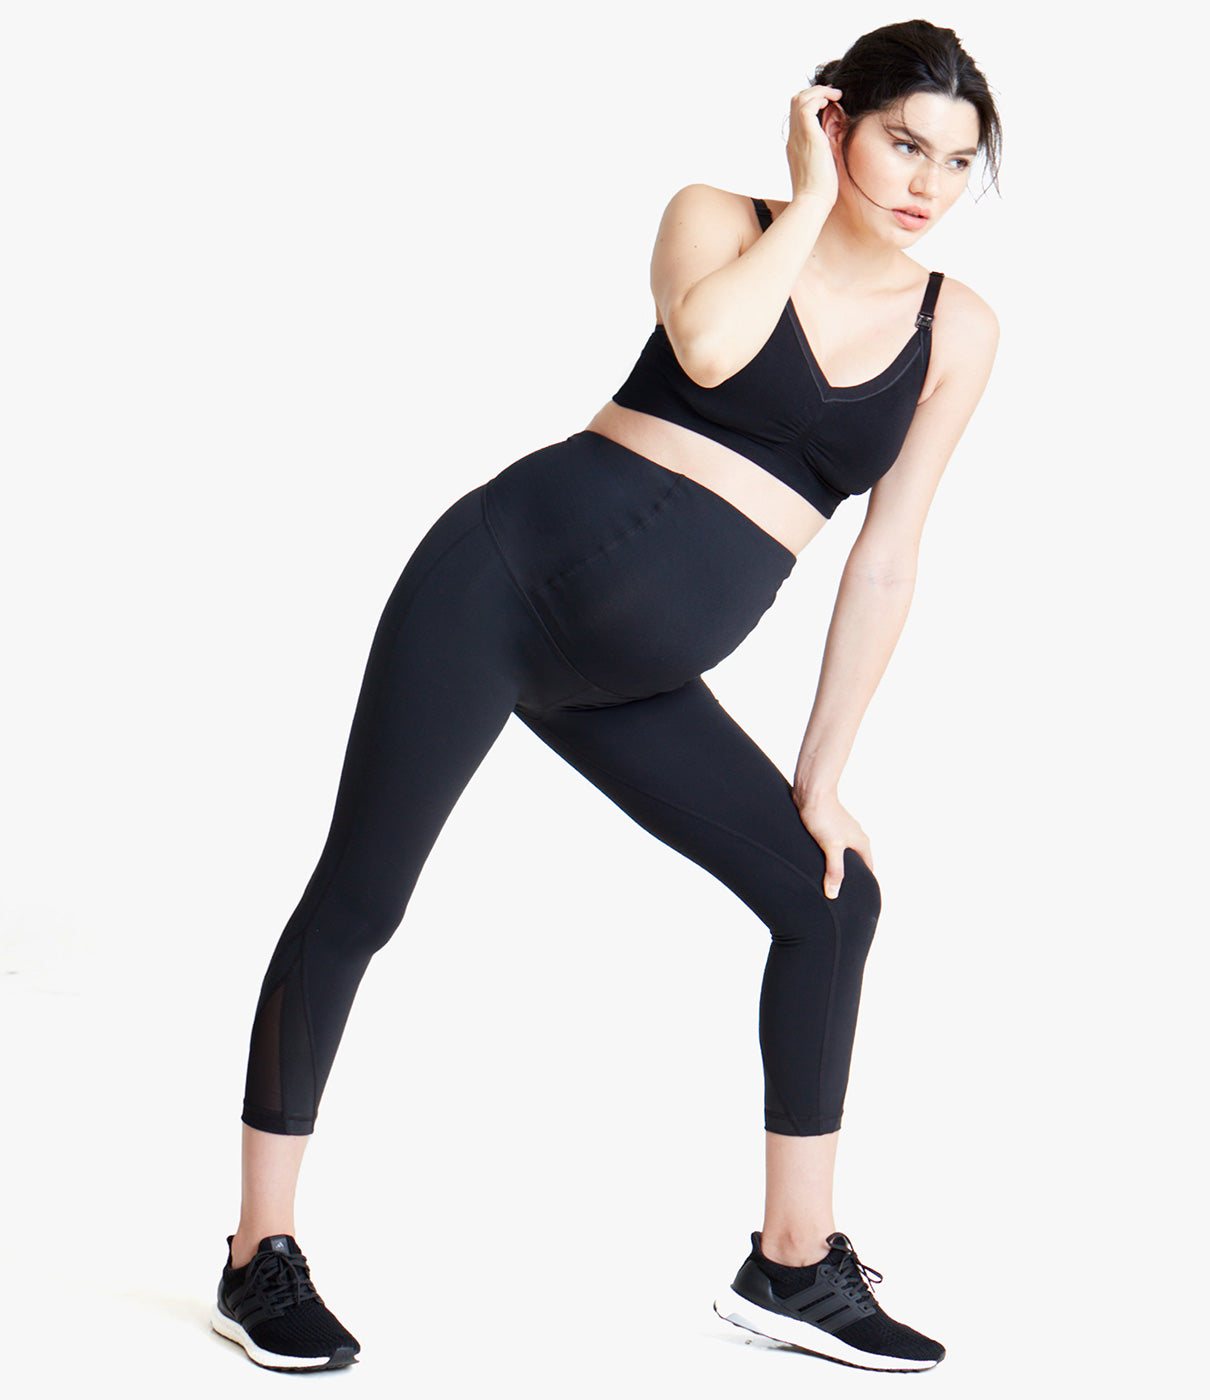 ACTIVEWEAR TECHNOLOGYMoisture-wicking and antimicrobial four-way stretch fabric.